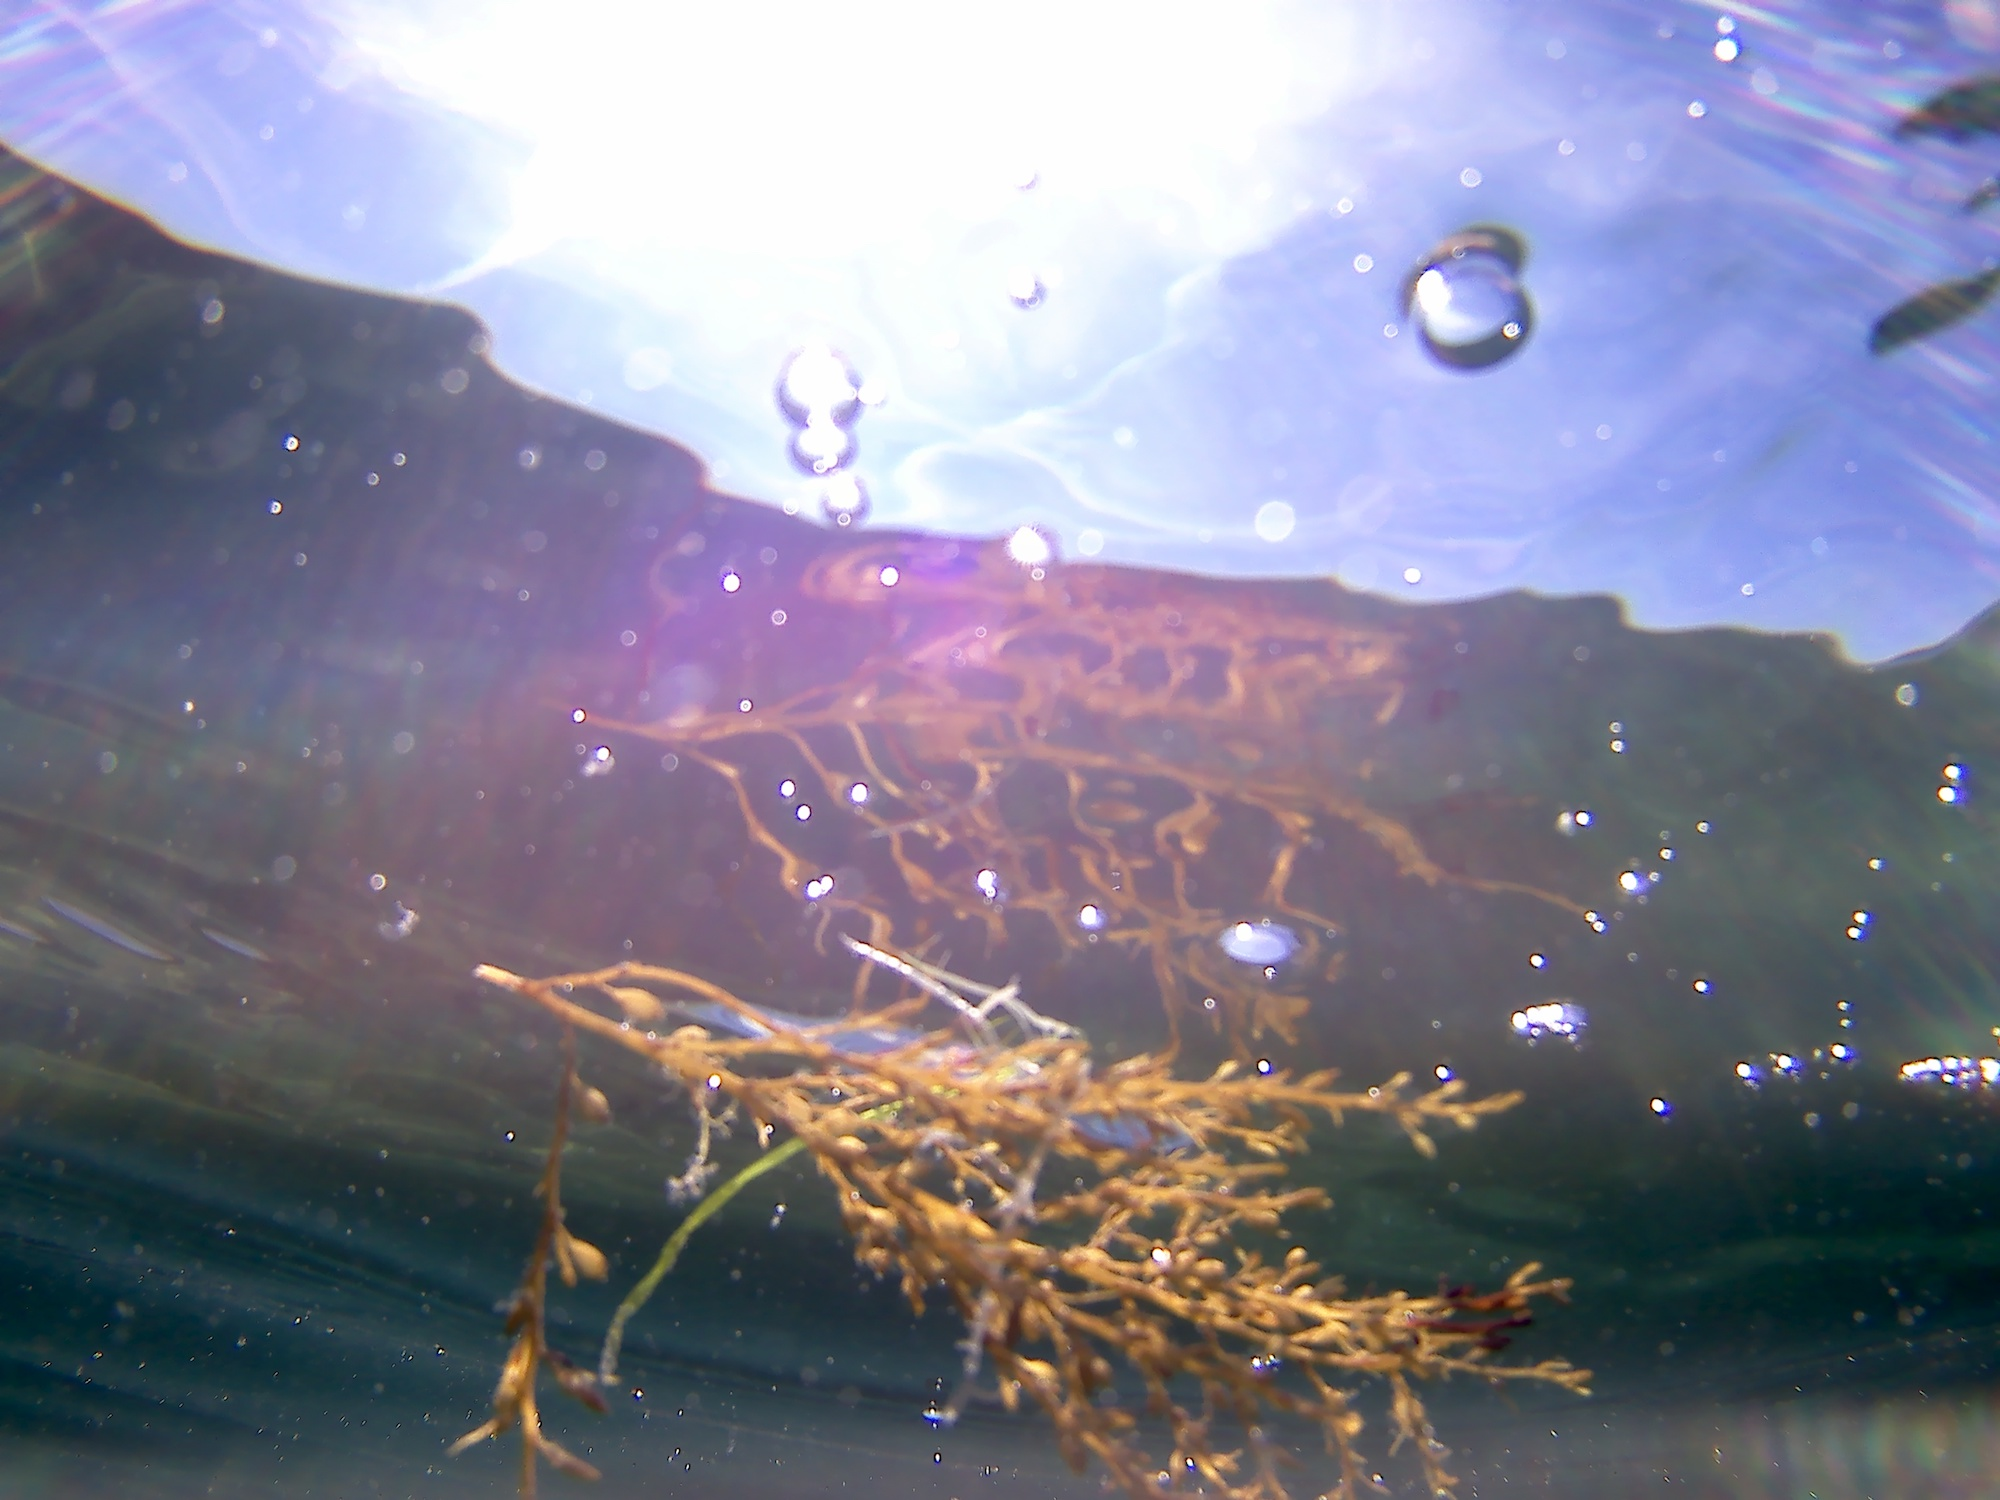 seaweed and bubbles.jpg